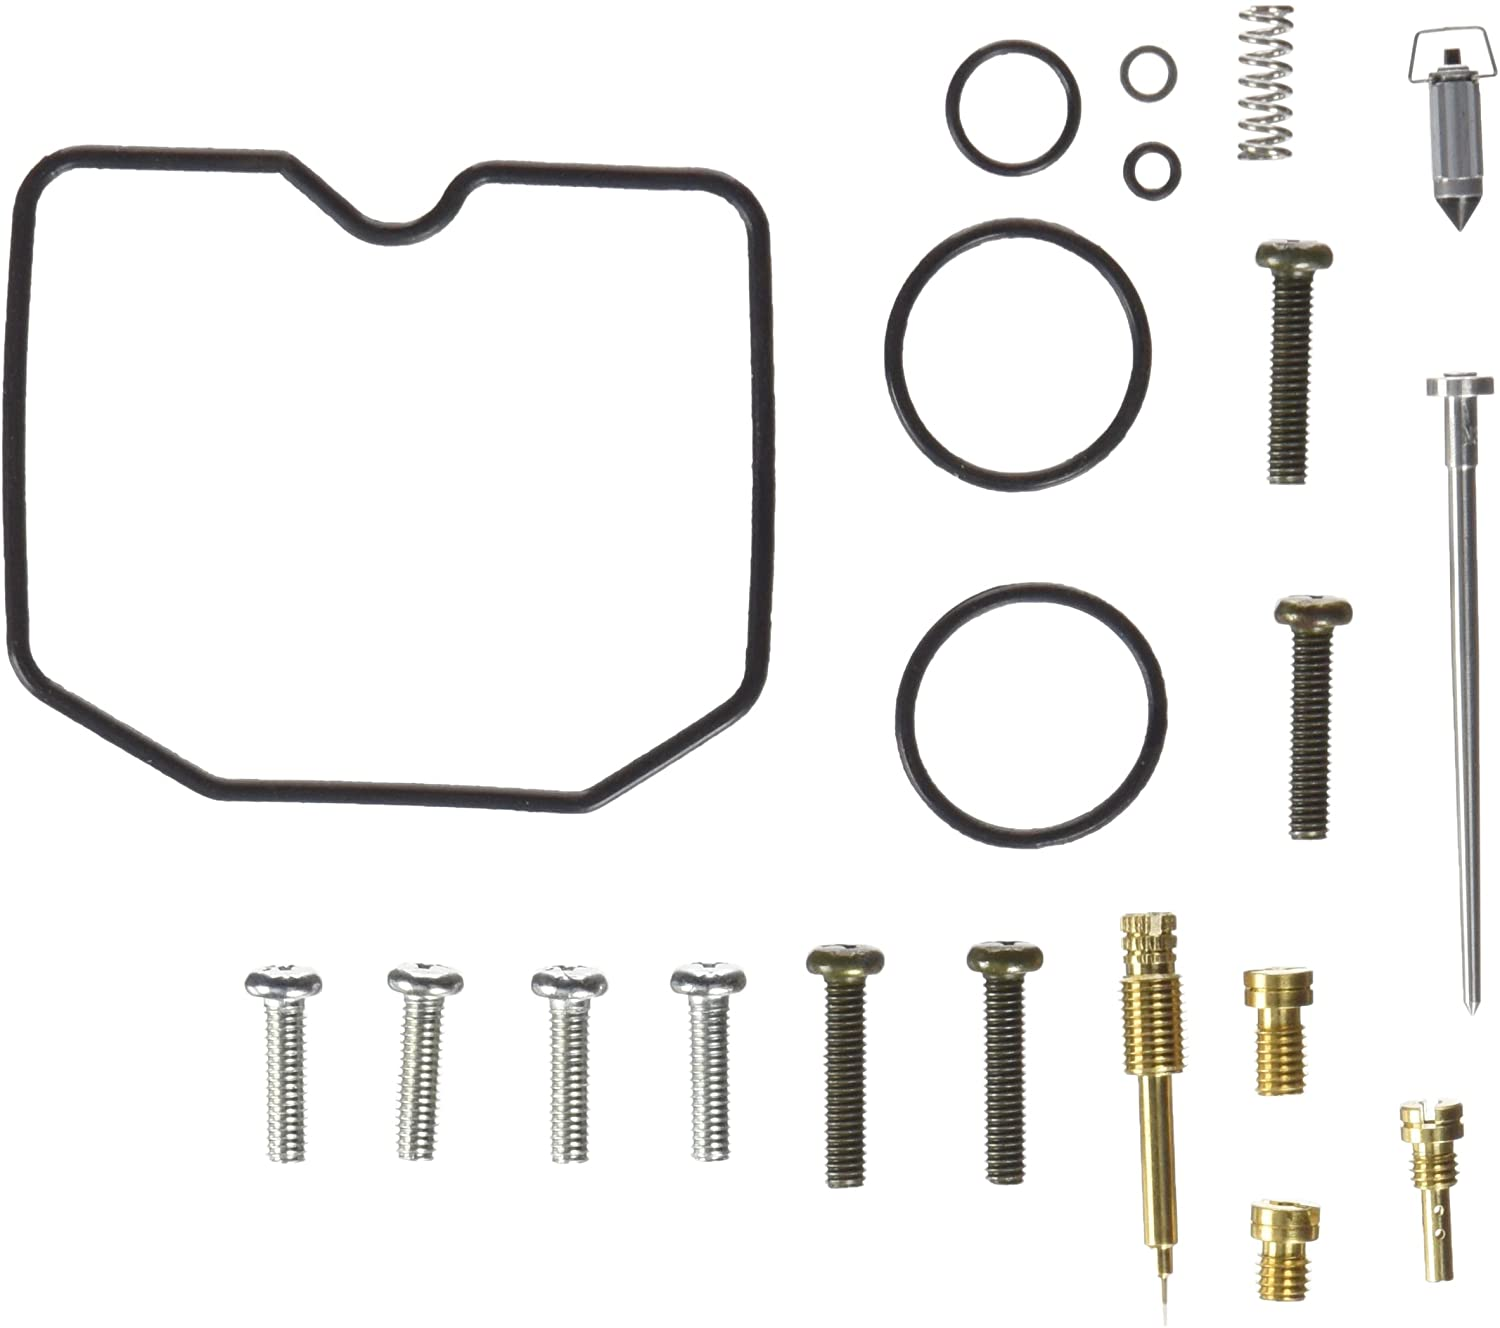 All Balls Carburetor Repair Kit 26-1226 Kawasaki KLF300C Bayou 2x4/4X4 1989-1995